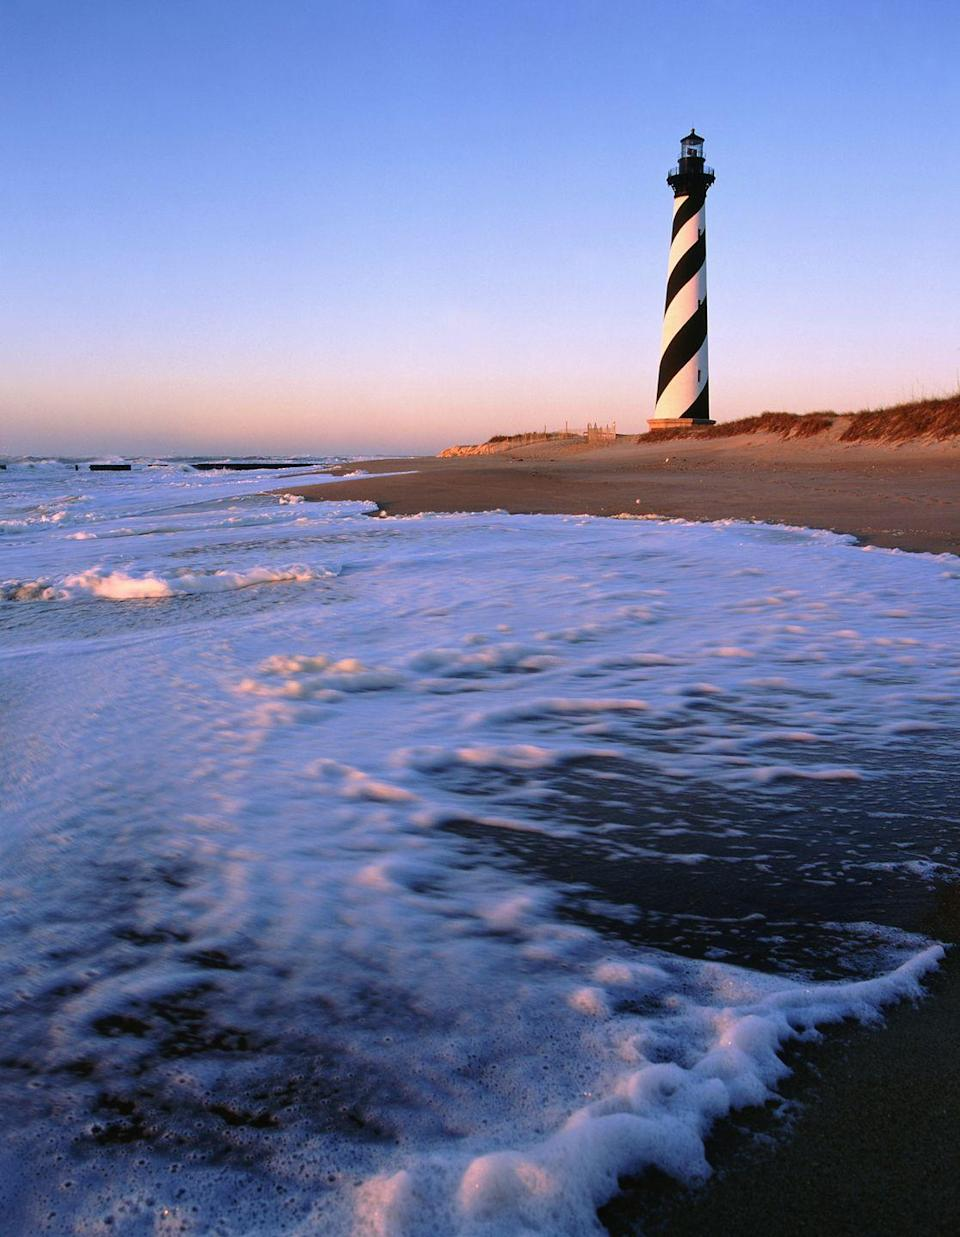 <p>The Cape Hatteras Lighthouse adds a spotlight to the beaches of Buxton, located at the tip of Hatteras Island.</p>